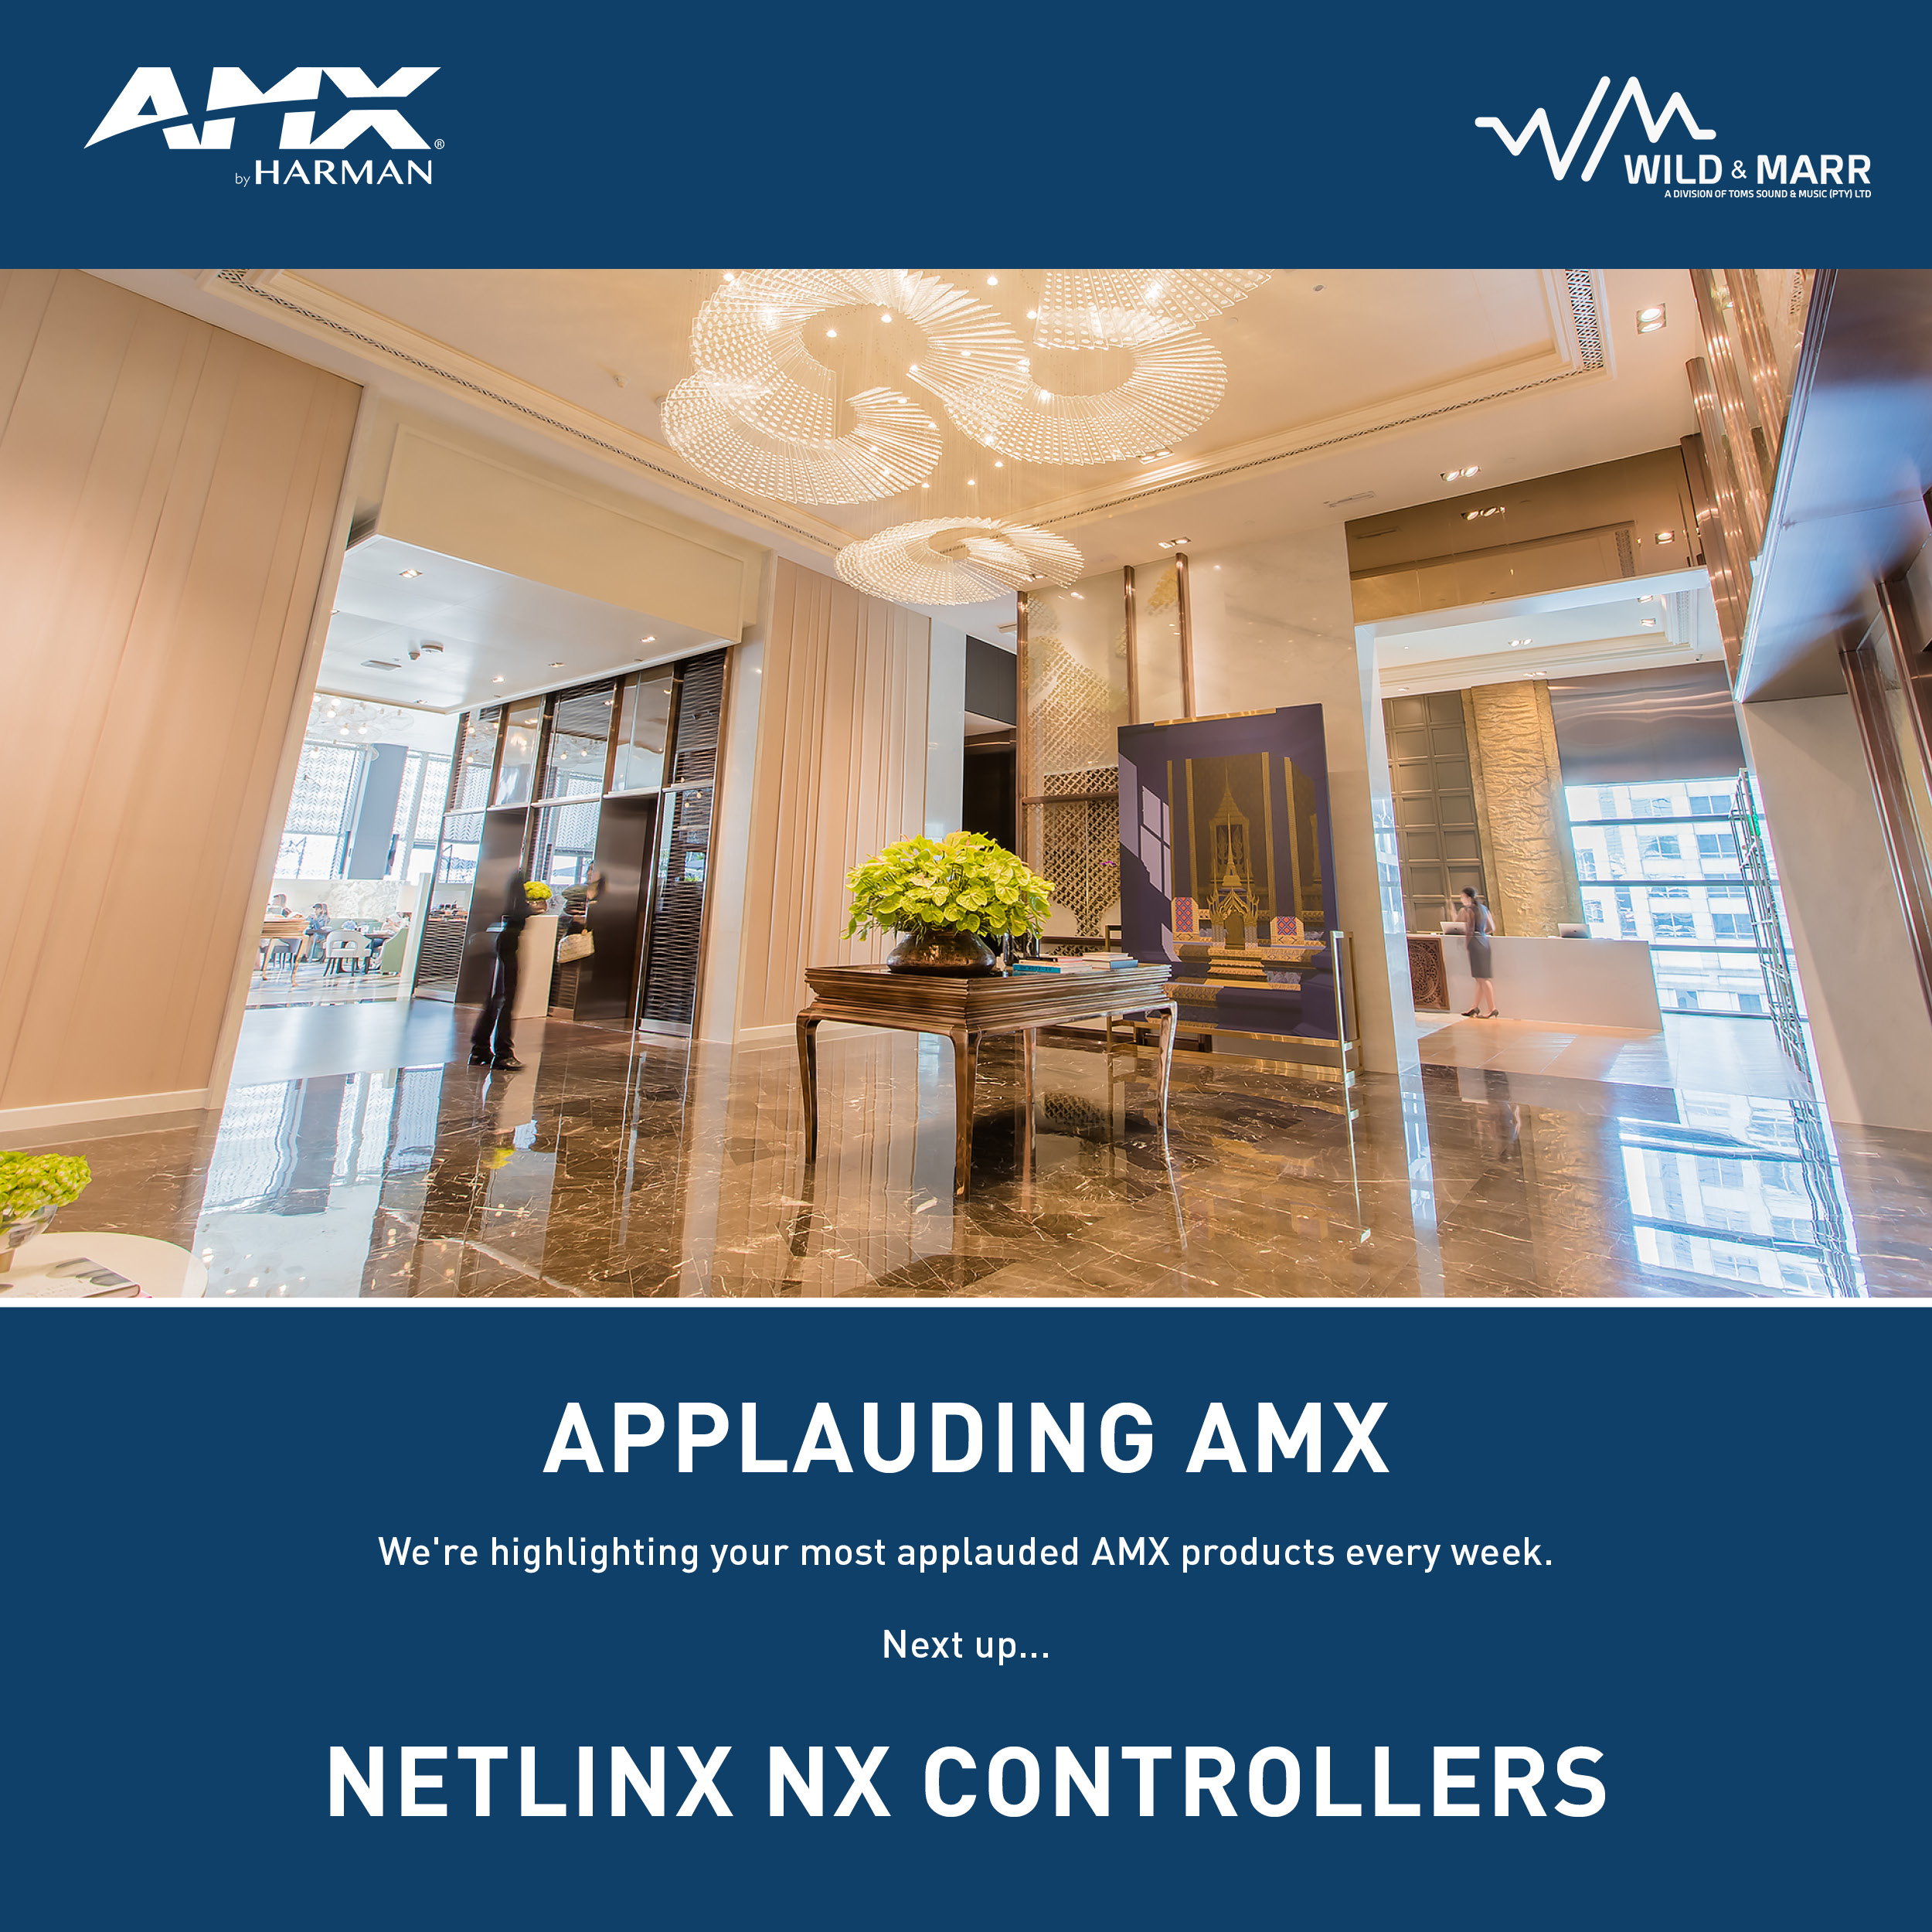 Applauding AMX | We're highlighting your most applauded products every week. Next up, NetLinx NX Integrated Controllers